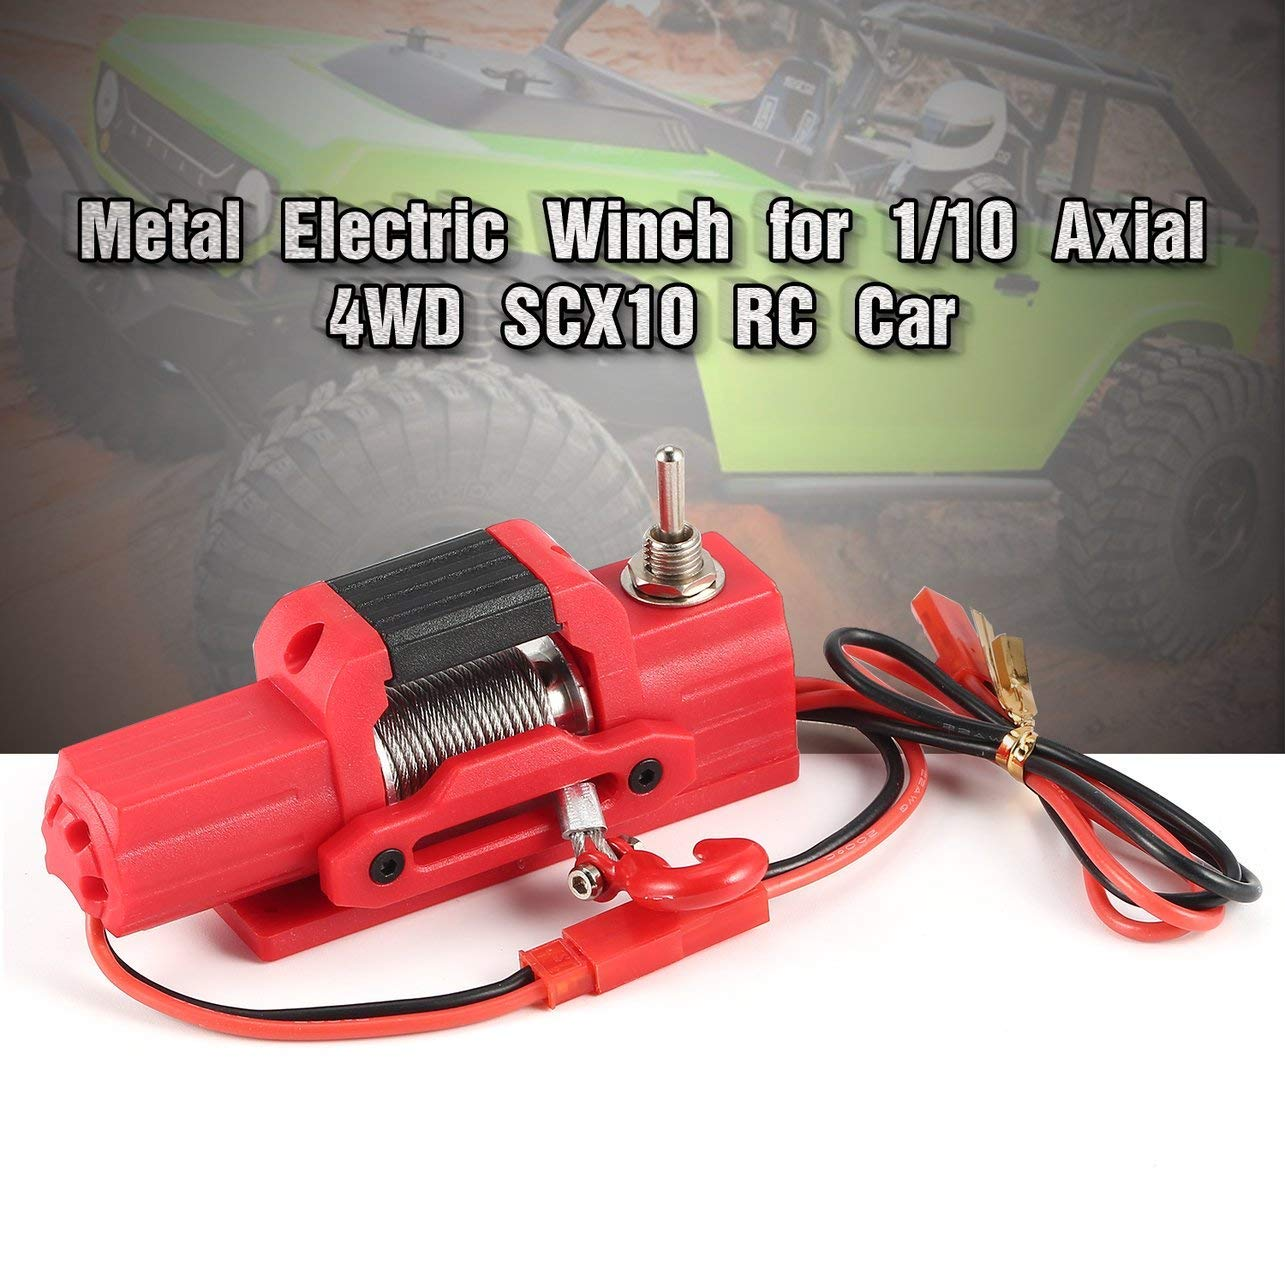 WOSOSYEYO Metal Electric Winch Car Parts for 1/10 Axial 4WD SCX10 Traxxas D90 RC Crawler Red